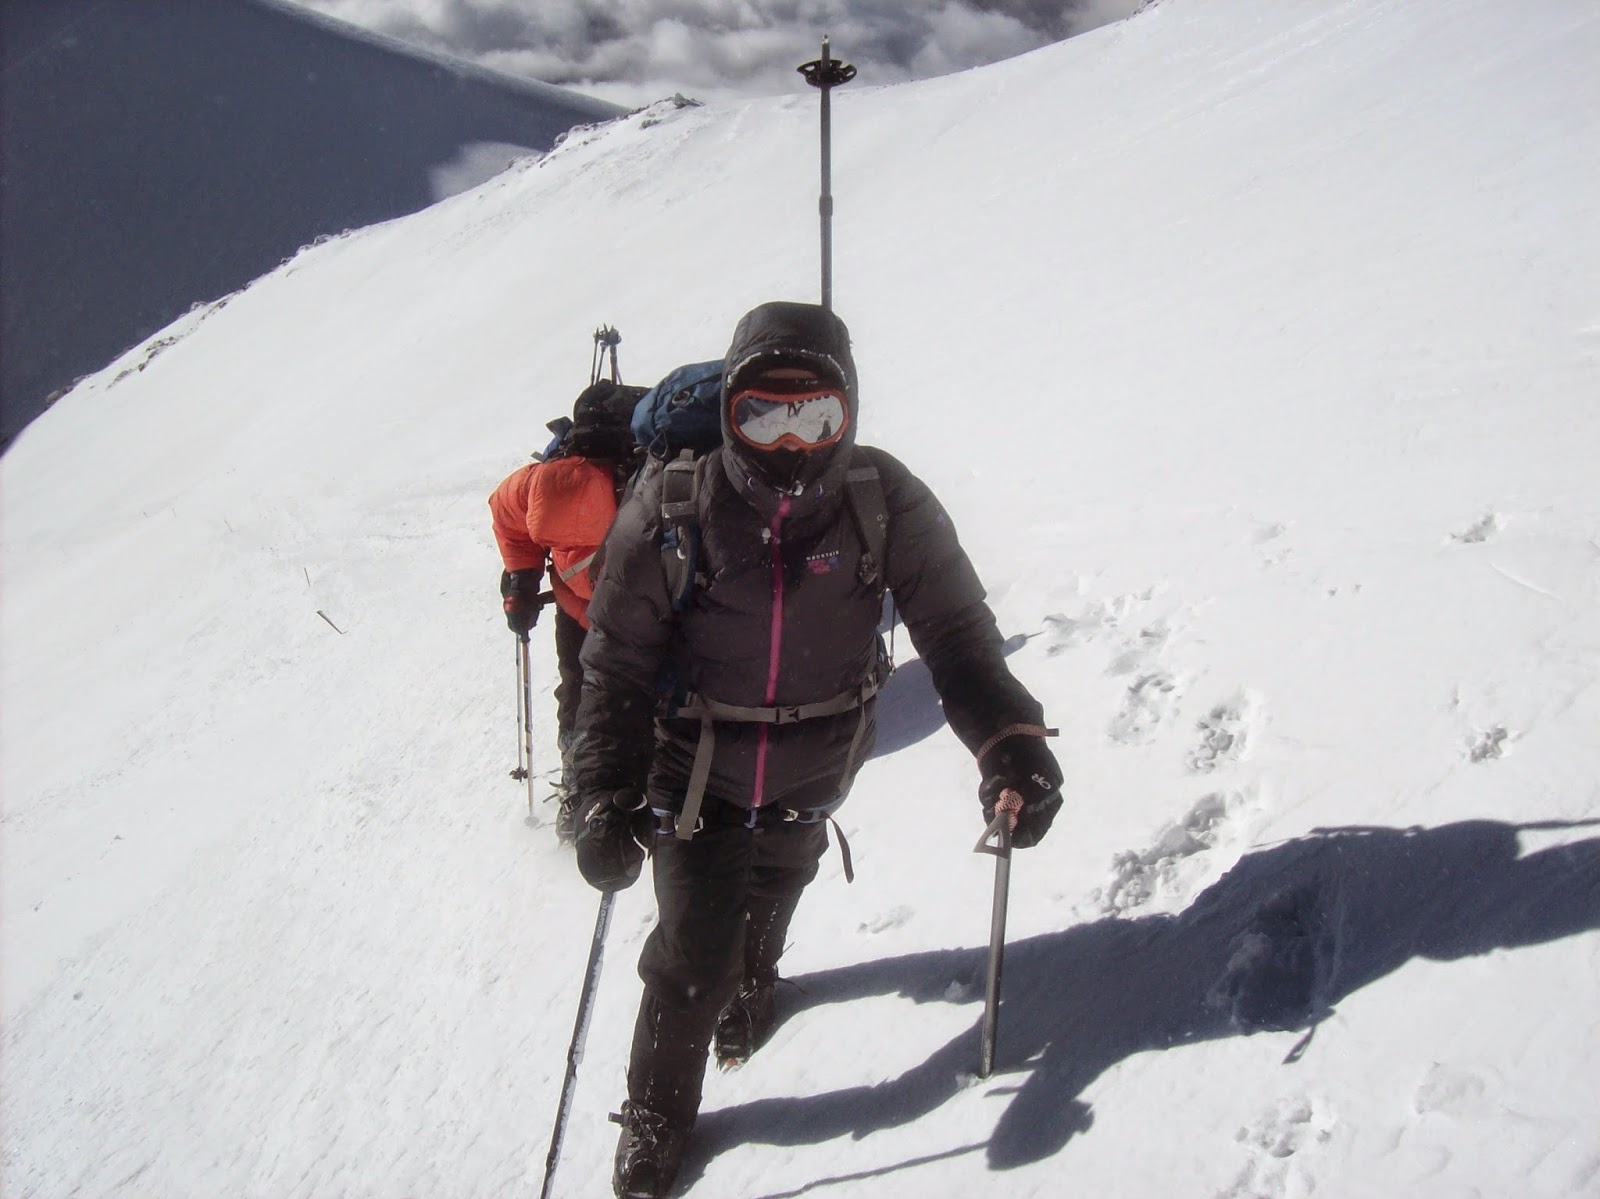 Here we are traversing the steep part. I was definitely the slowest because I was so scared.